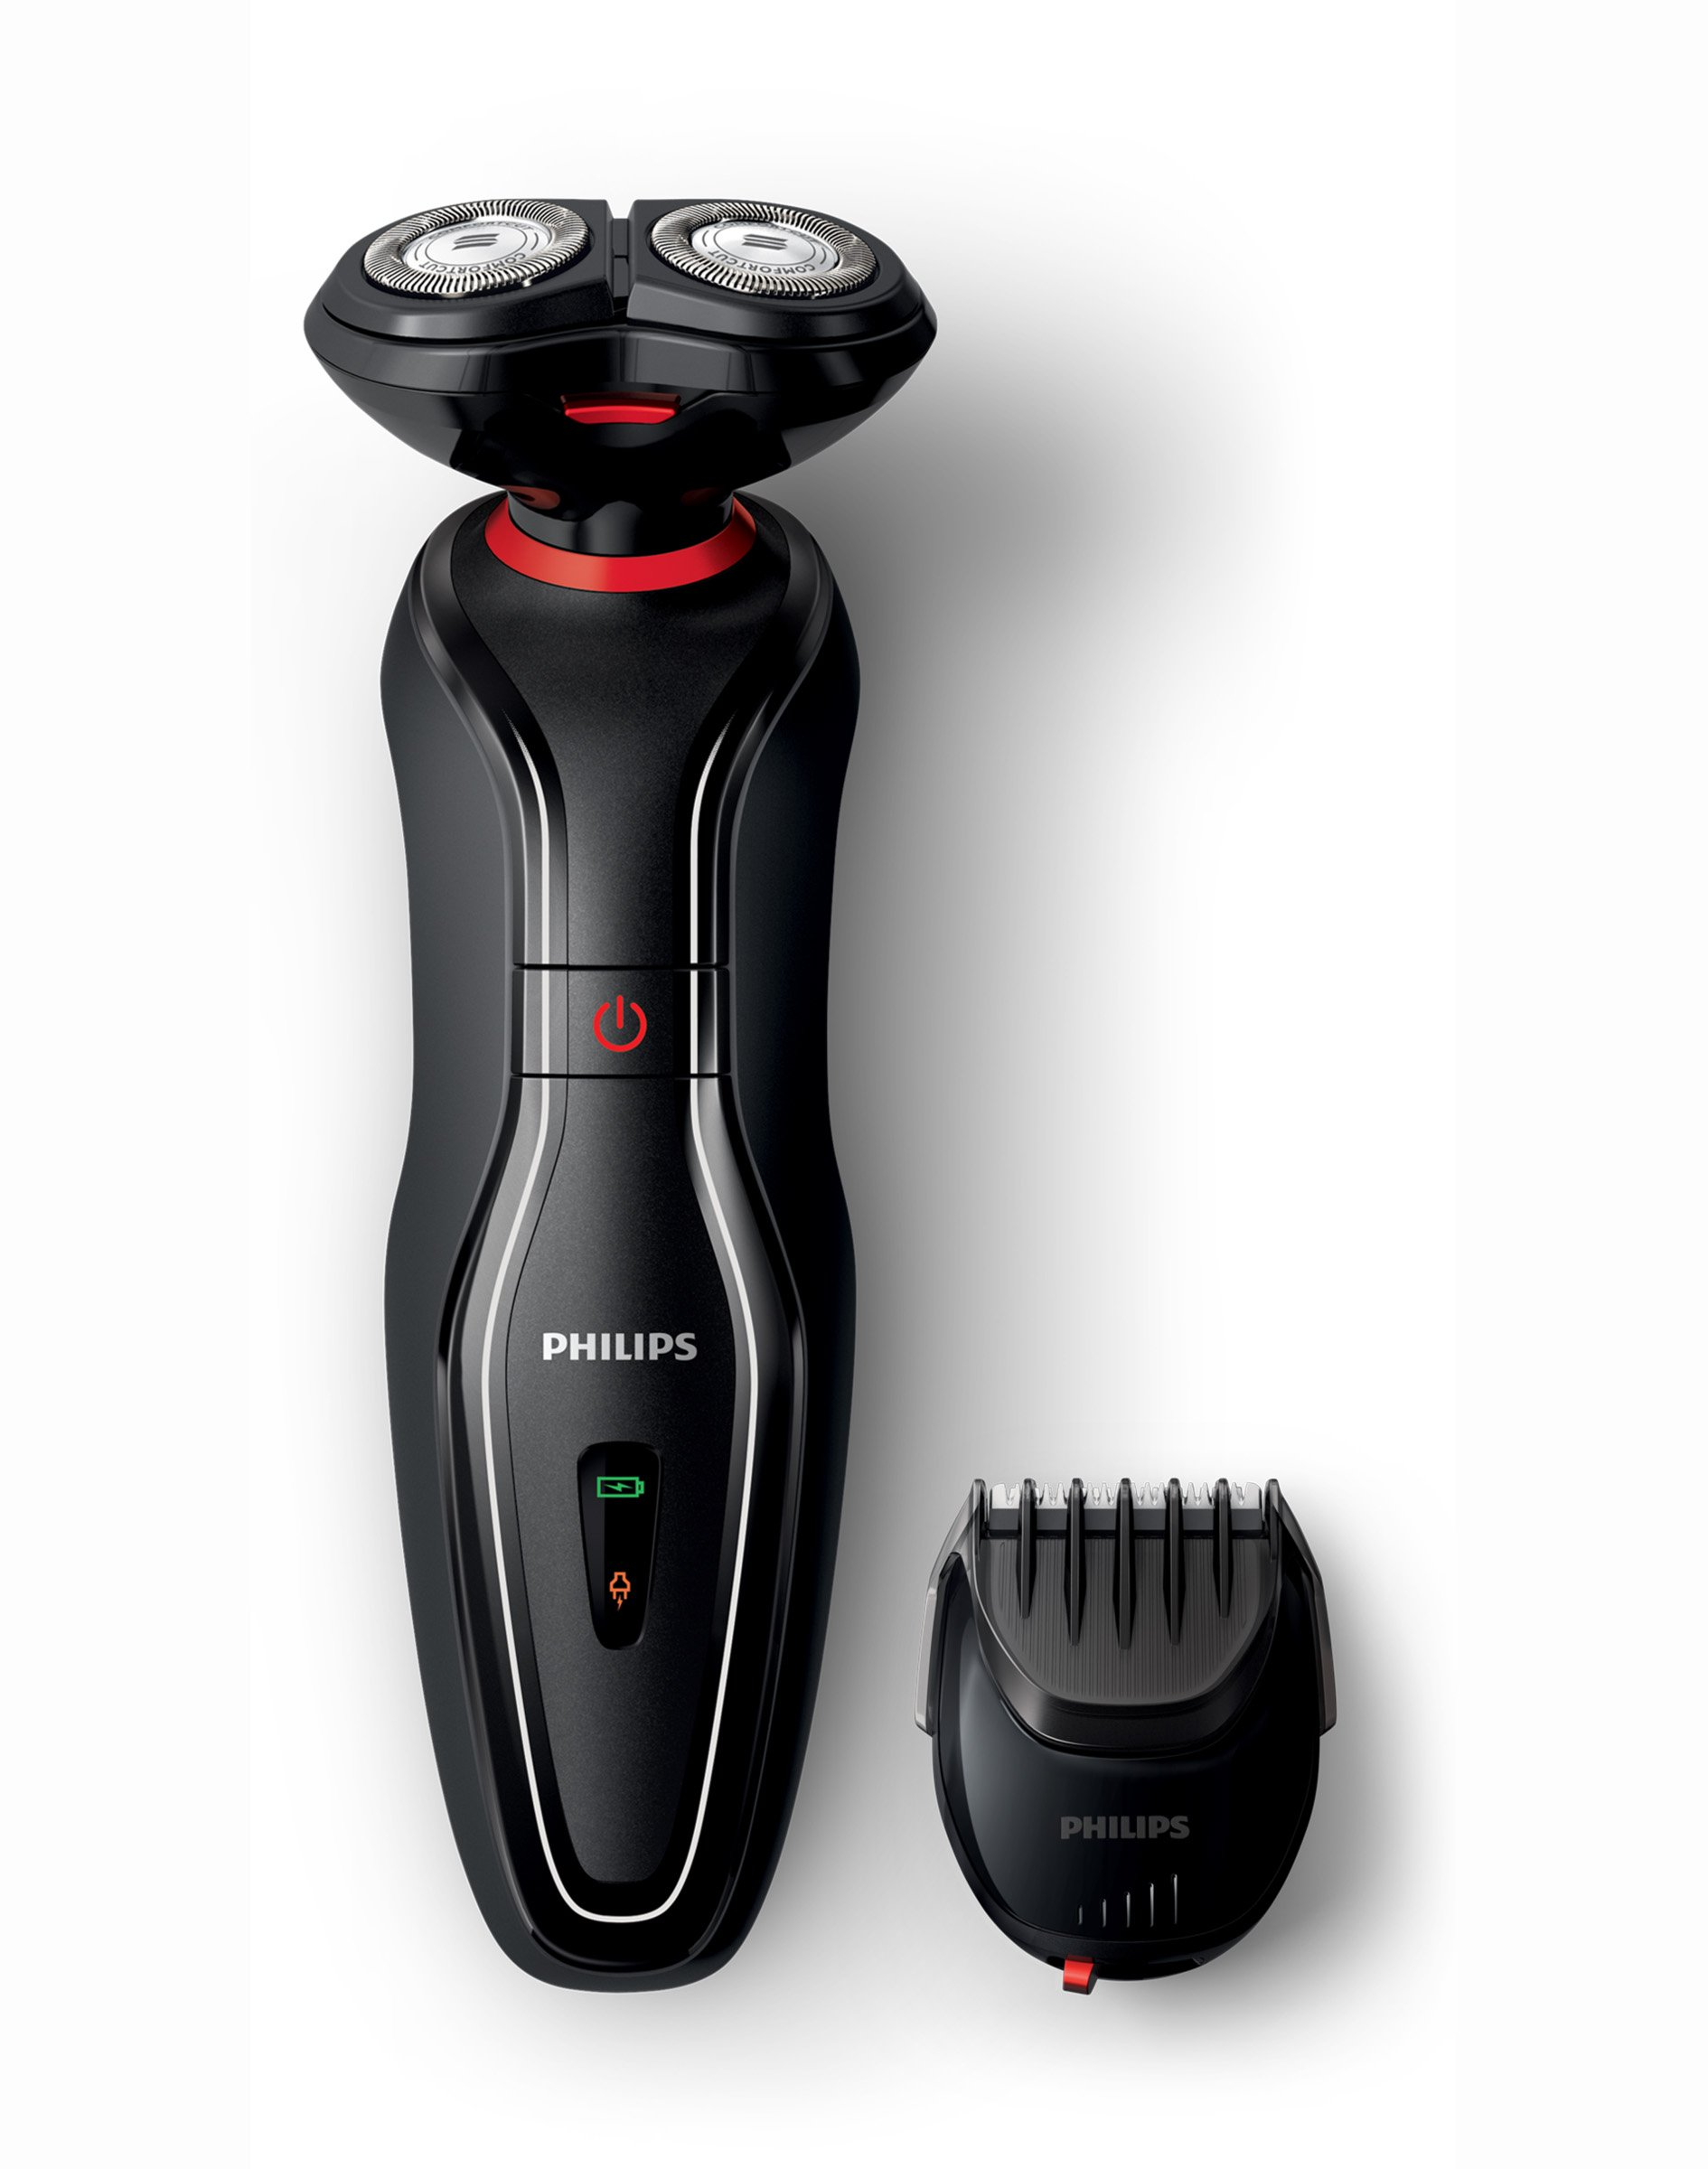 philips s720 17 series 1000 click and style shaver beard trimmer in one ebay. Black Bedroom Furniture Sets. Home Design Ideas